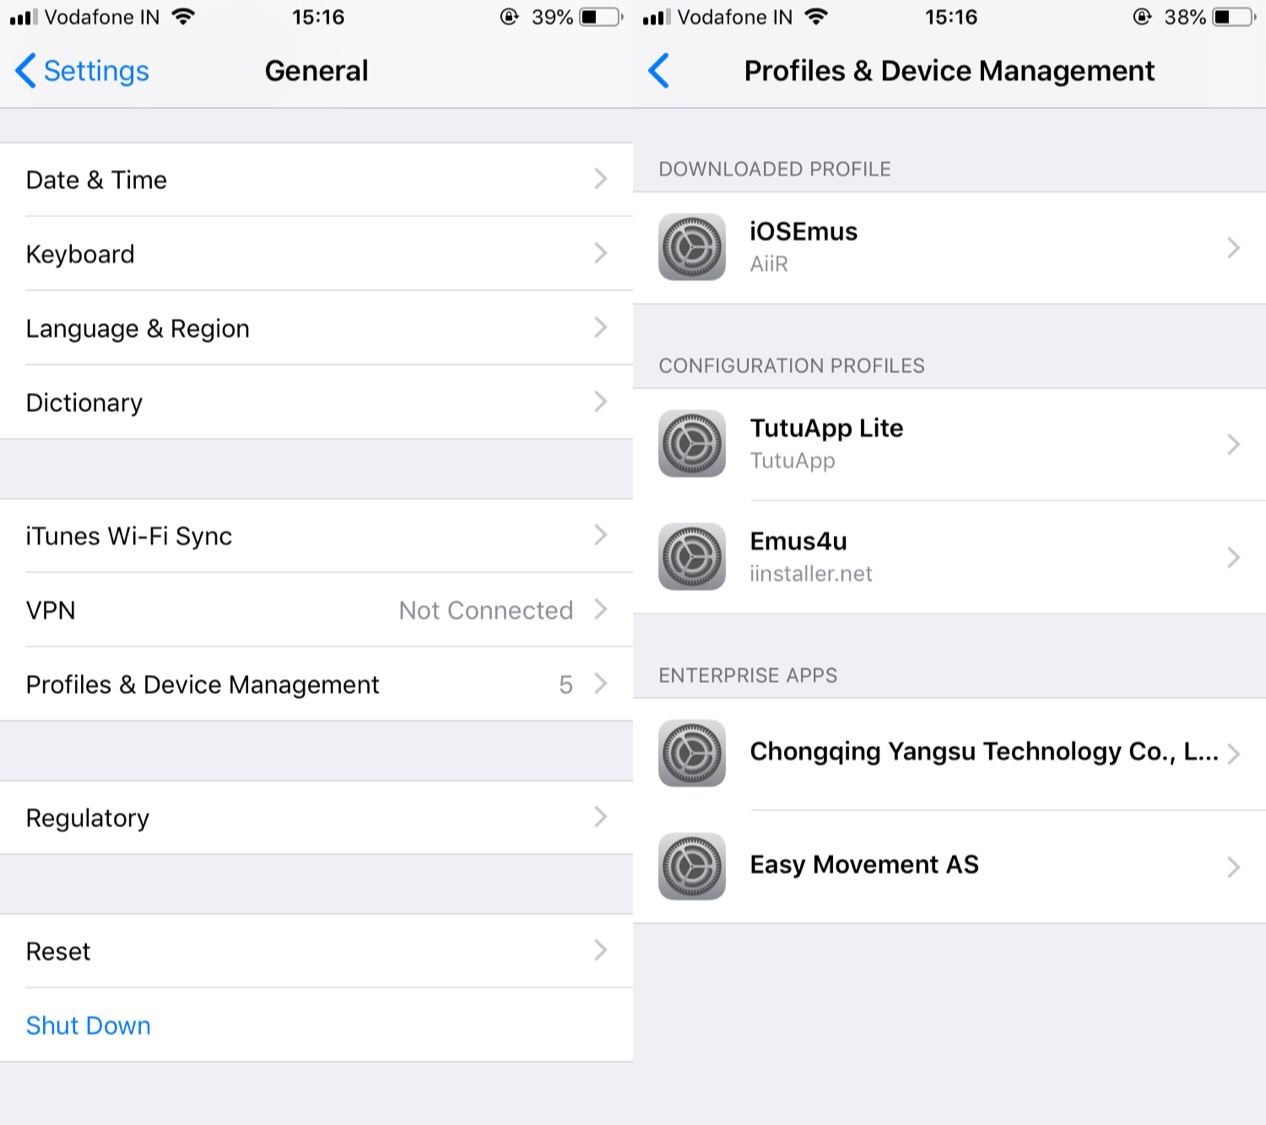 iOSEmus – Download and Install iOSEmus on iOS devices [UPDATED]